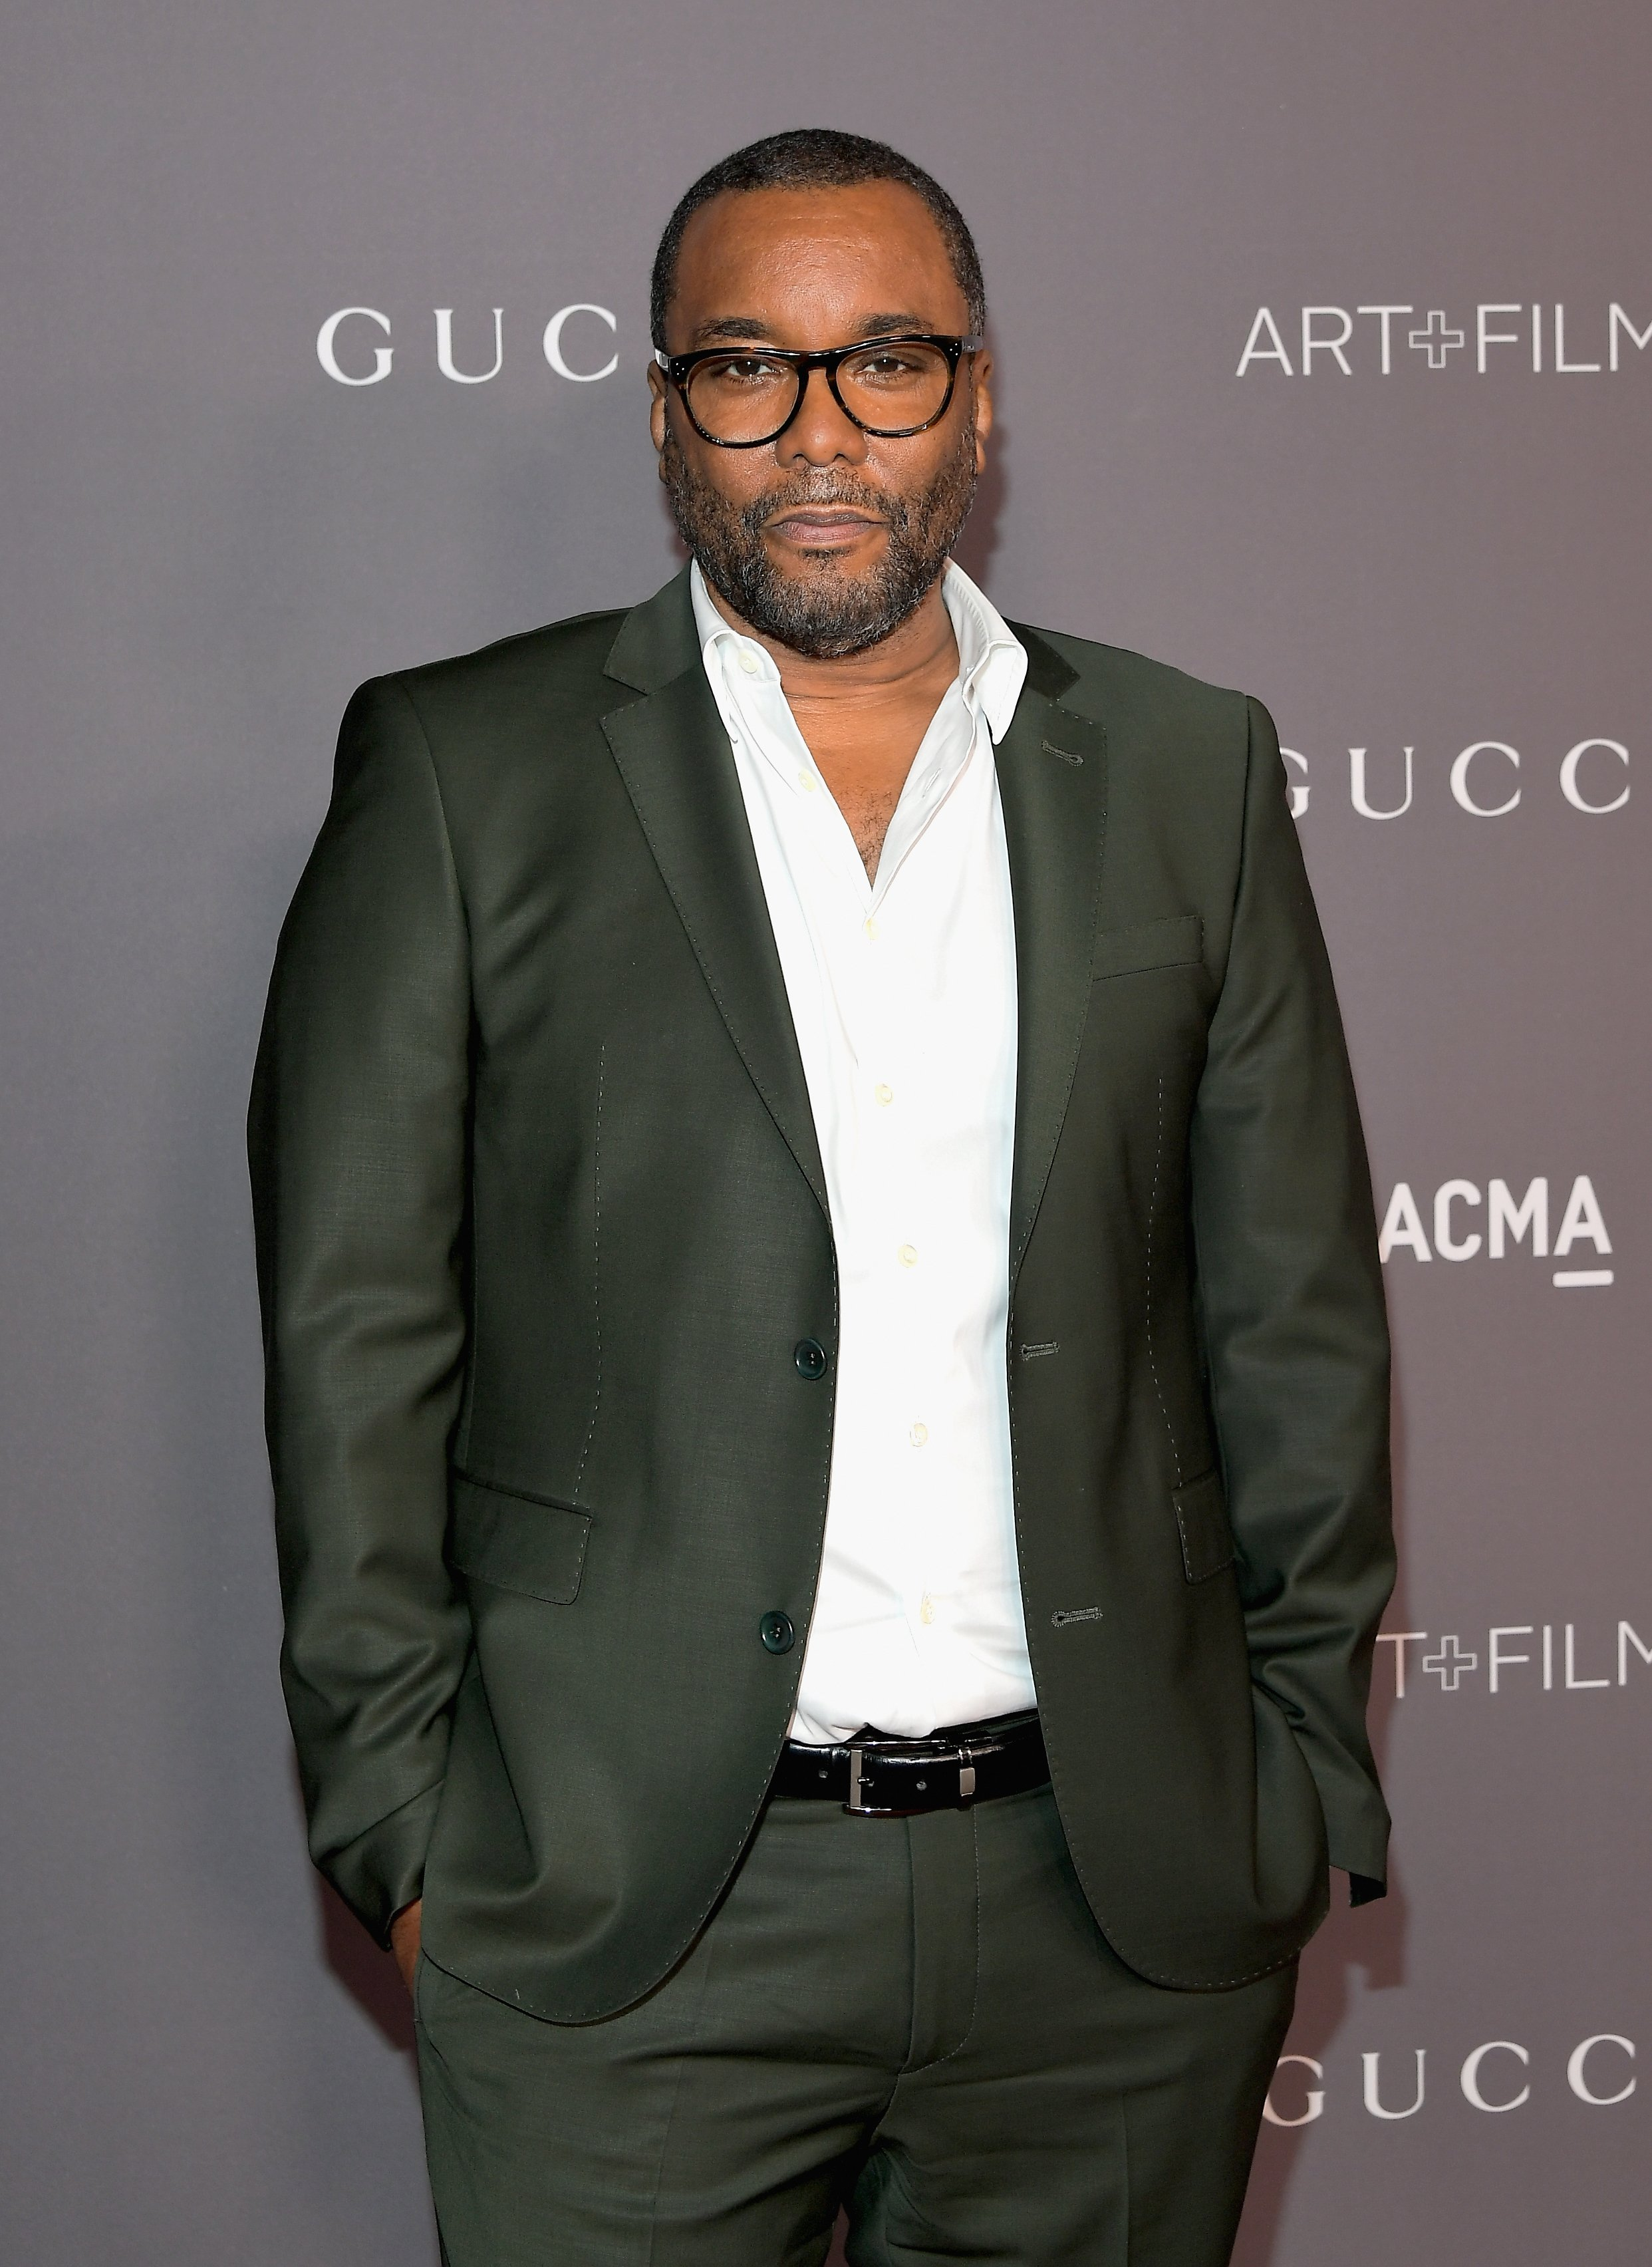 Lee Daniels at the LACMA Art + Film Gala at LACMA on November 4, 2017 in Los Angeles, California.|Source: Getty Images